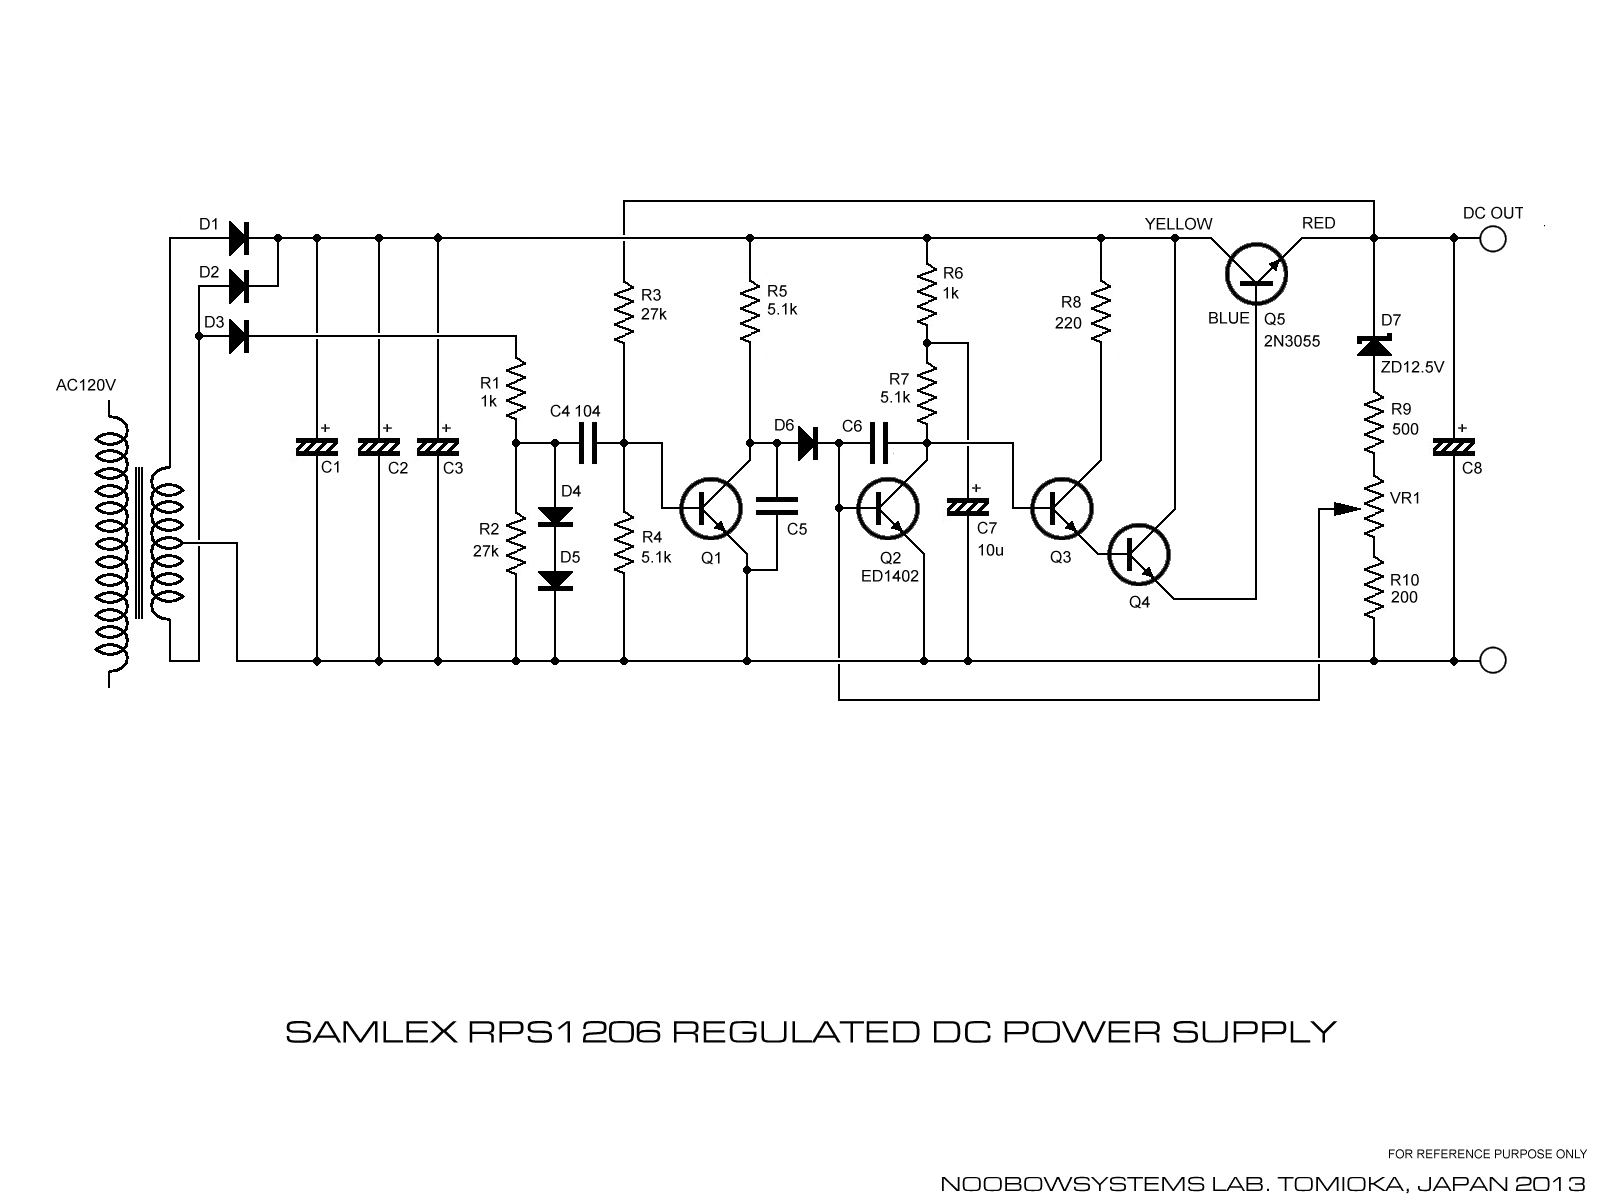 samlex rps1206 regulated dc power supply   back to life